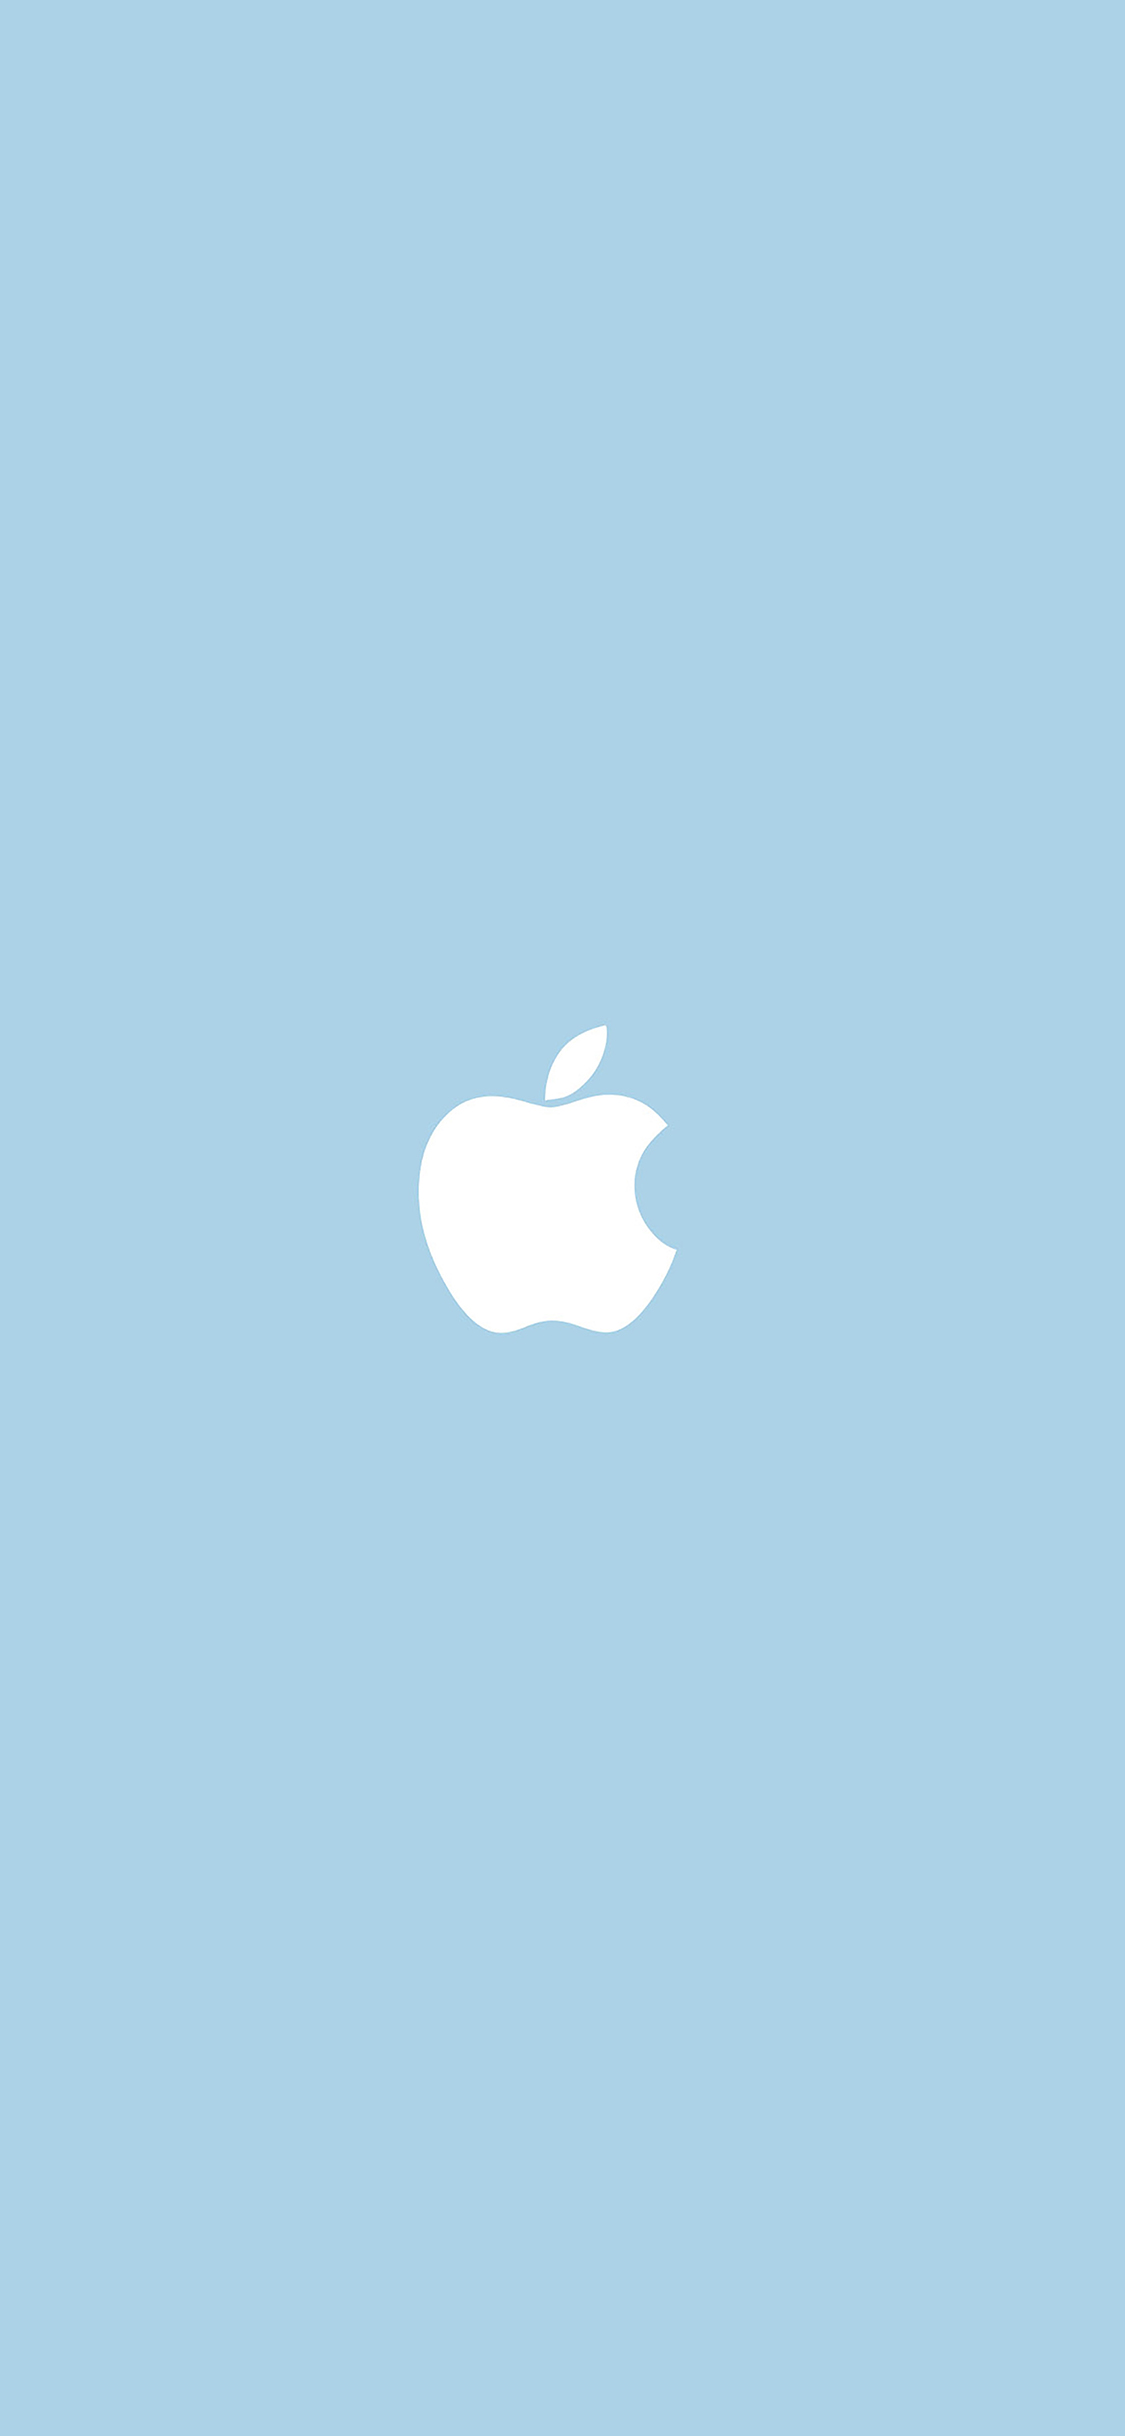 iPhoneXpapers.com-Apple-iPhone-wallpaper-va12-apple-simple-logo-blue-minimal